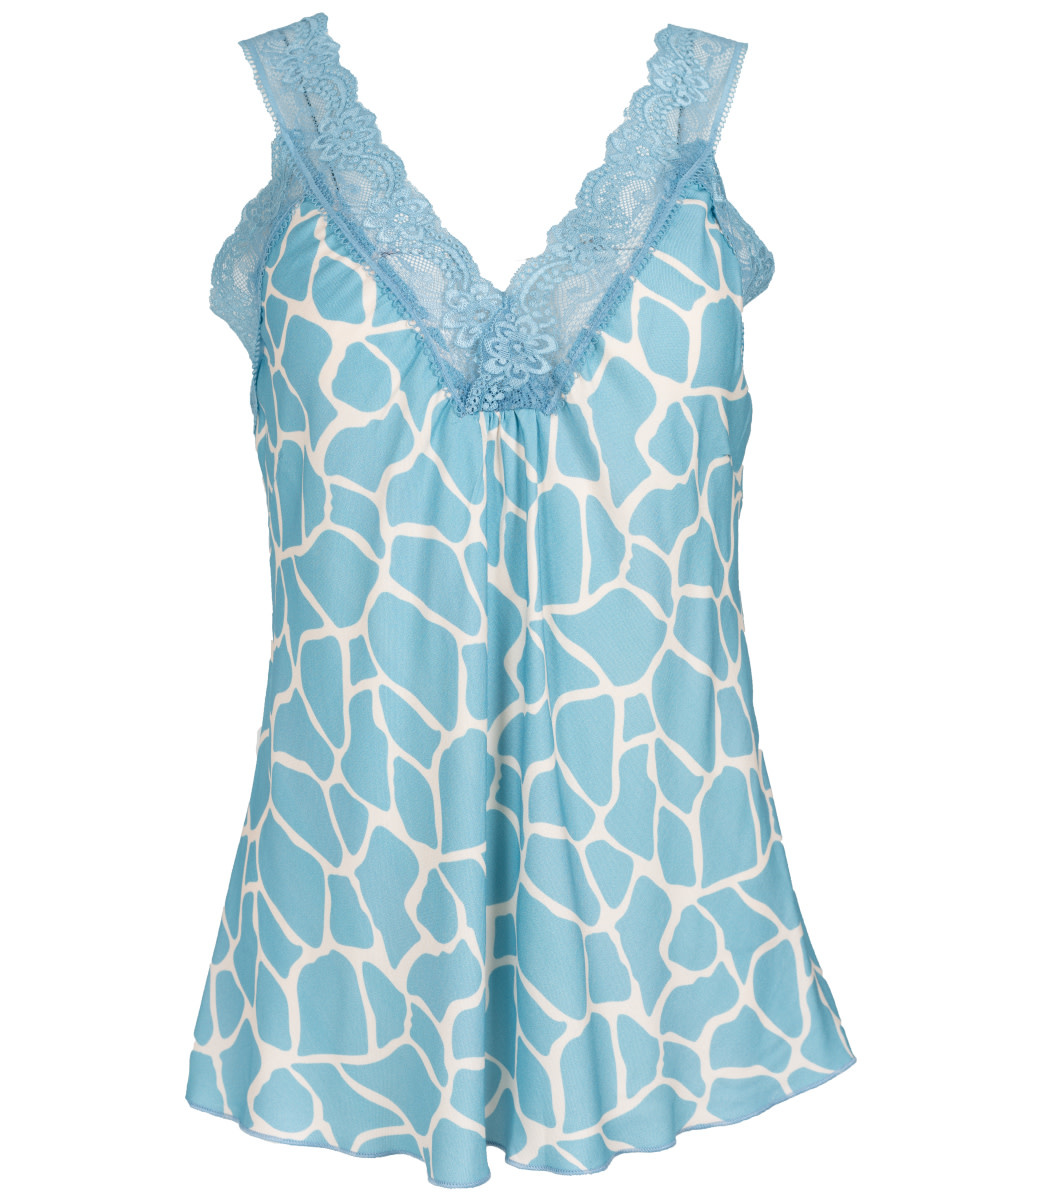 Wannahavesfashion Top blauw/wit Christa